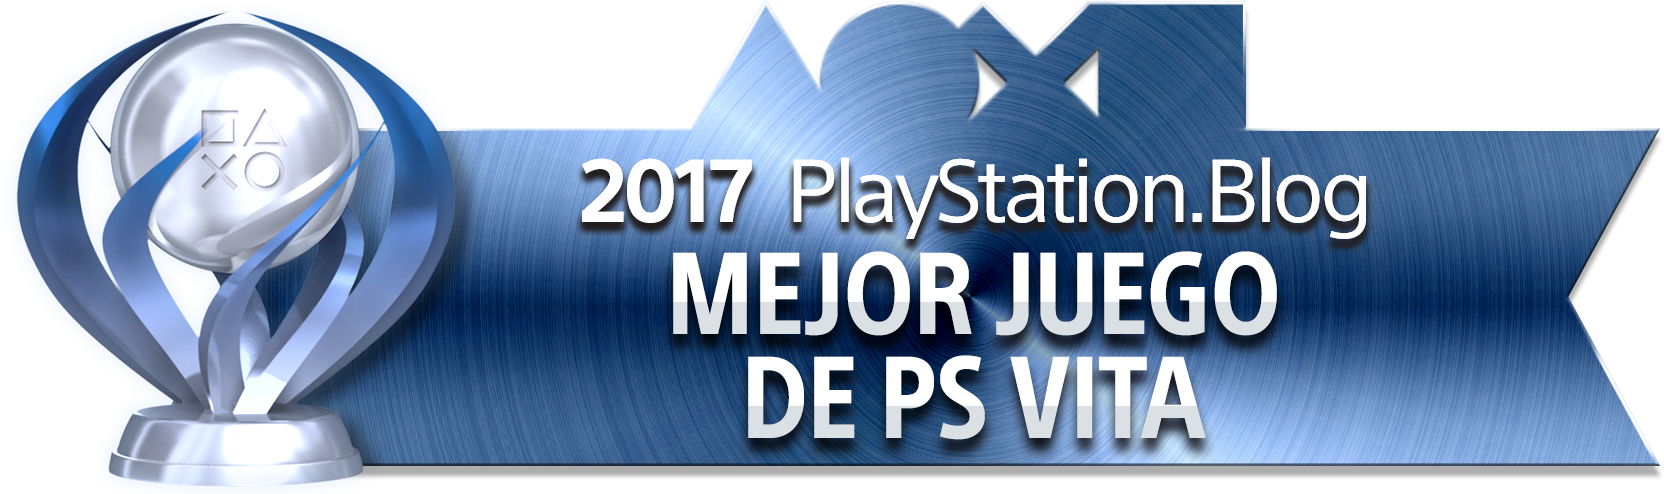 PlayStation Blog Game of the Year 2017 - Best PS Vita Game (Platinum)